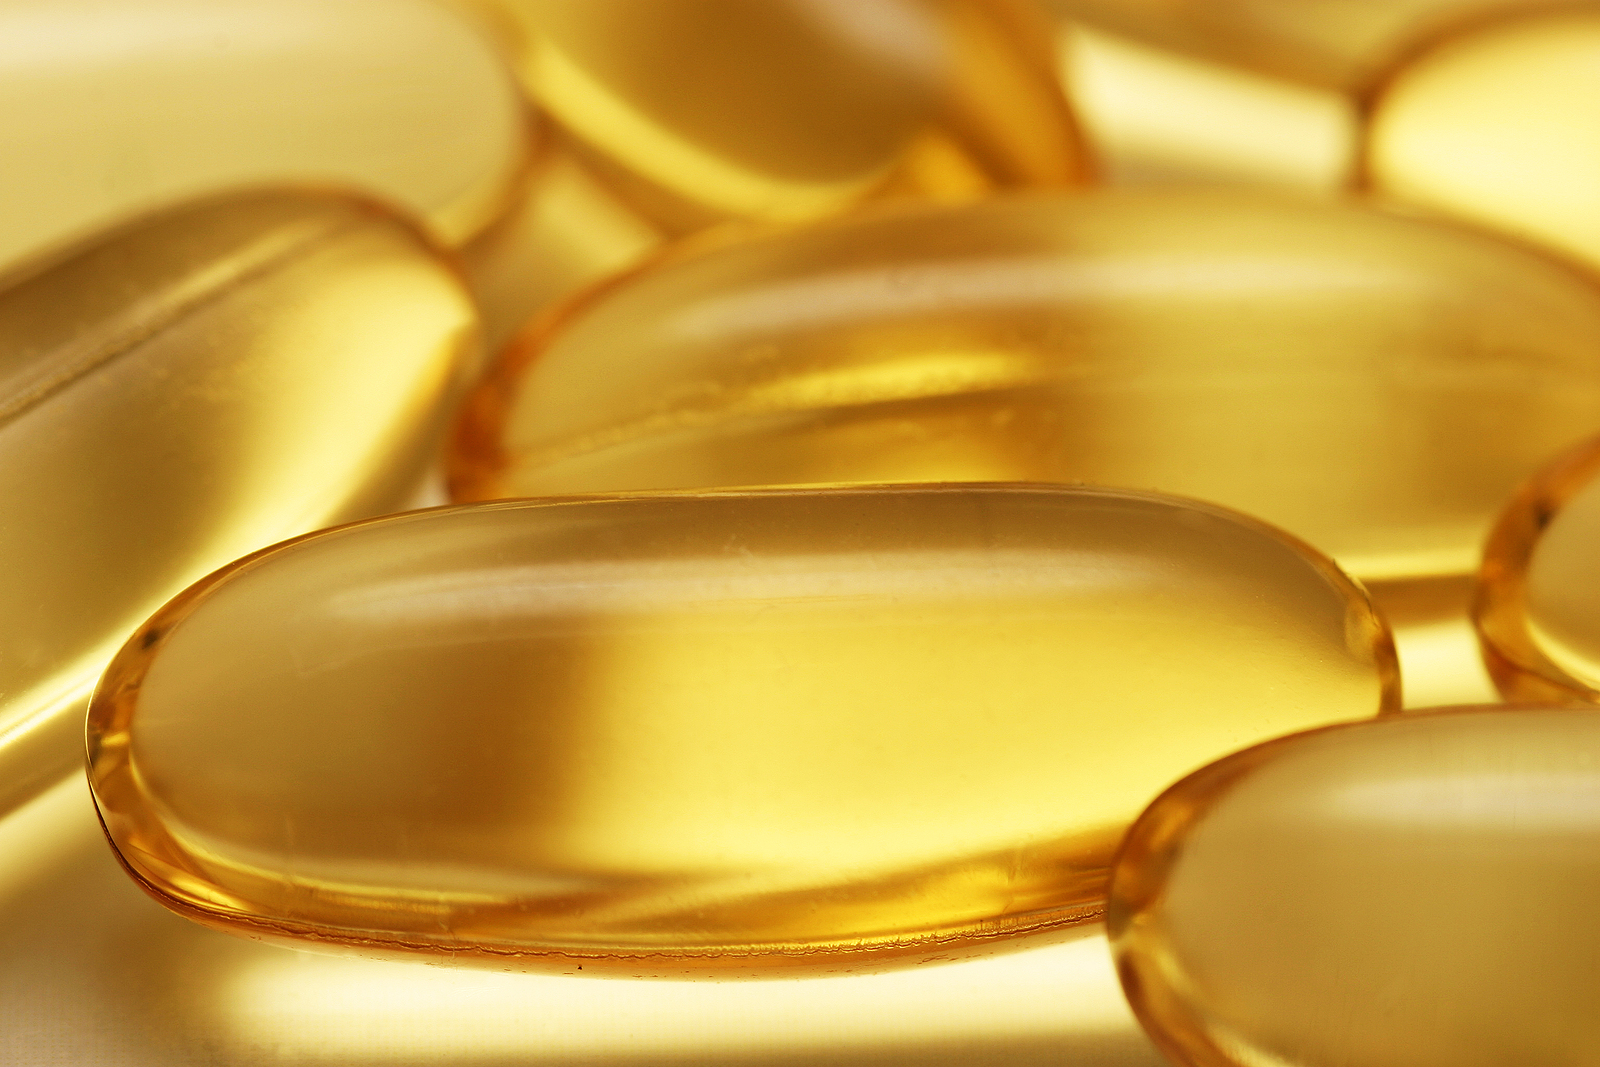 Podcast why krill oil is better than fish oil jenningswire for Is krill oil better than fish oil